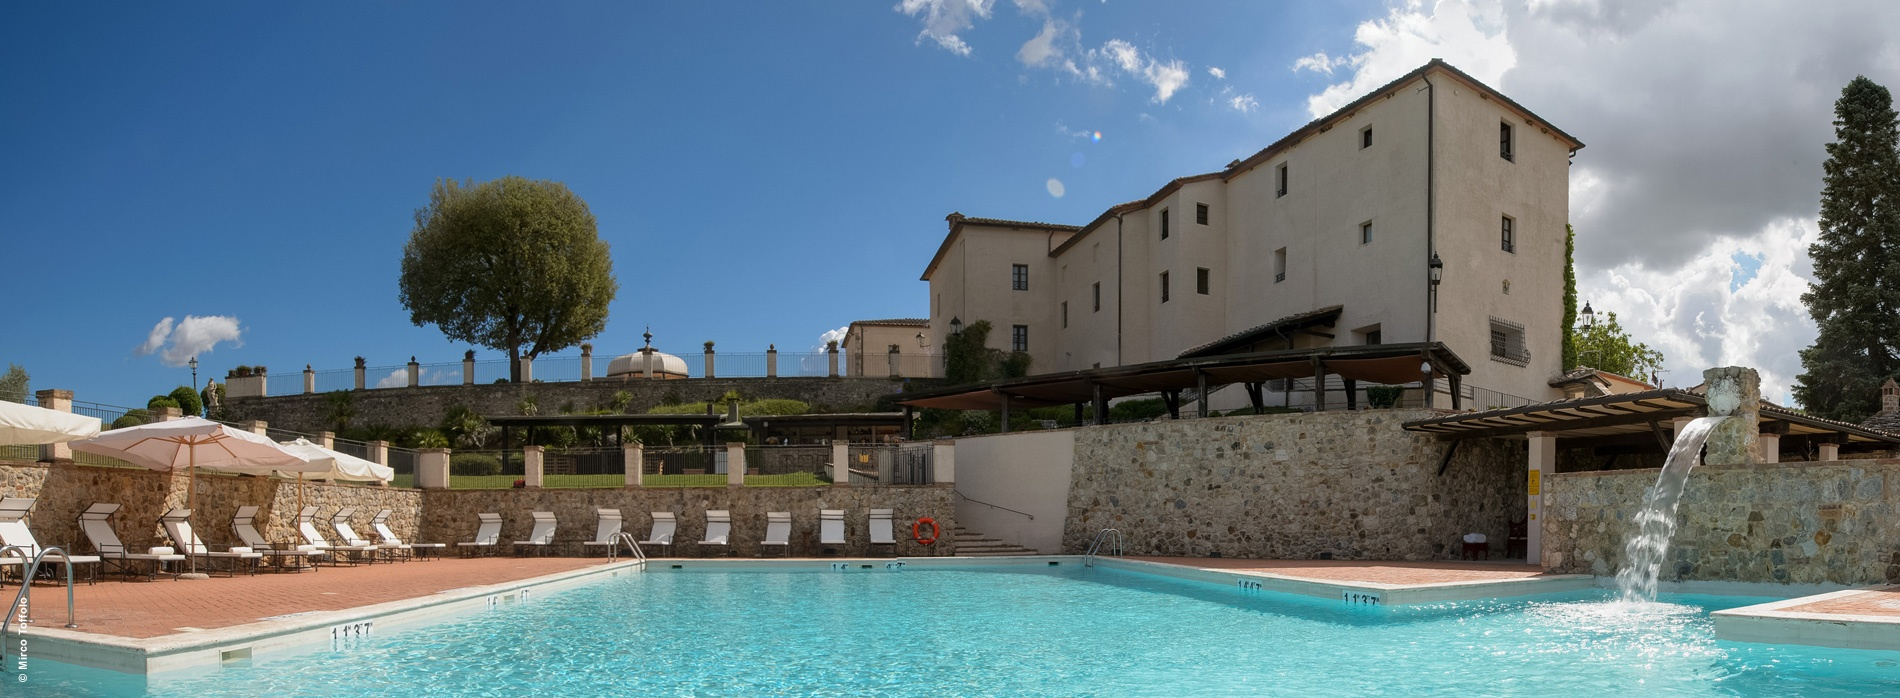 La Bagnaia Golf & Spa Resort Siena, Siena